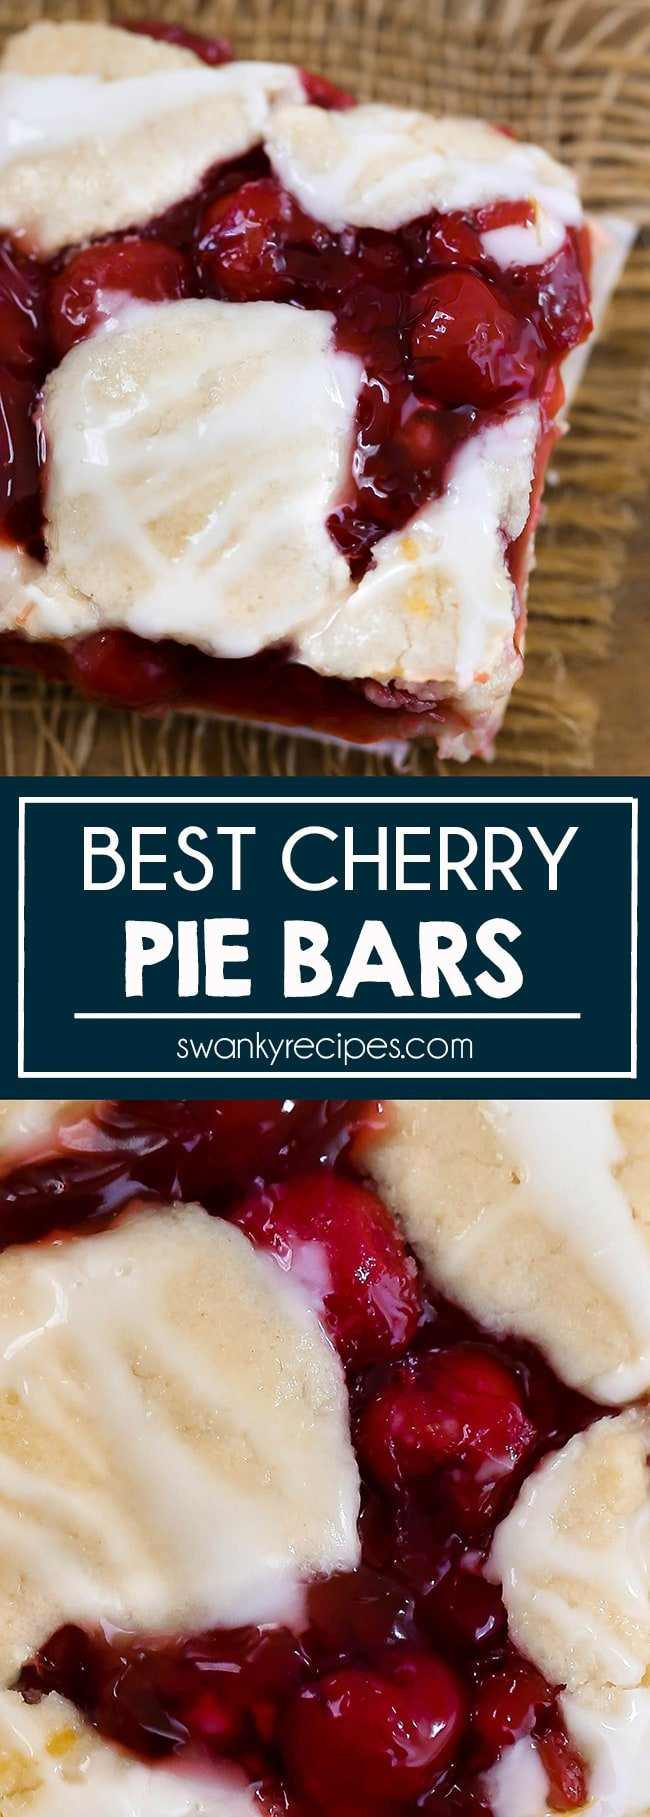 Cherries don't need to be in season to make CHERRY BARS. My favorite cherry bars recipe is made with cherry pie filling and taste so much better than making cherry pie. A simple shortbread sugar cookie crust with cherry pie filling and more sugar cookie topping.